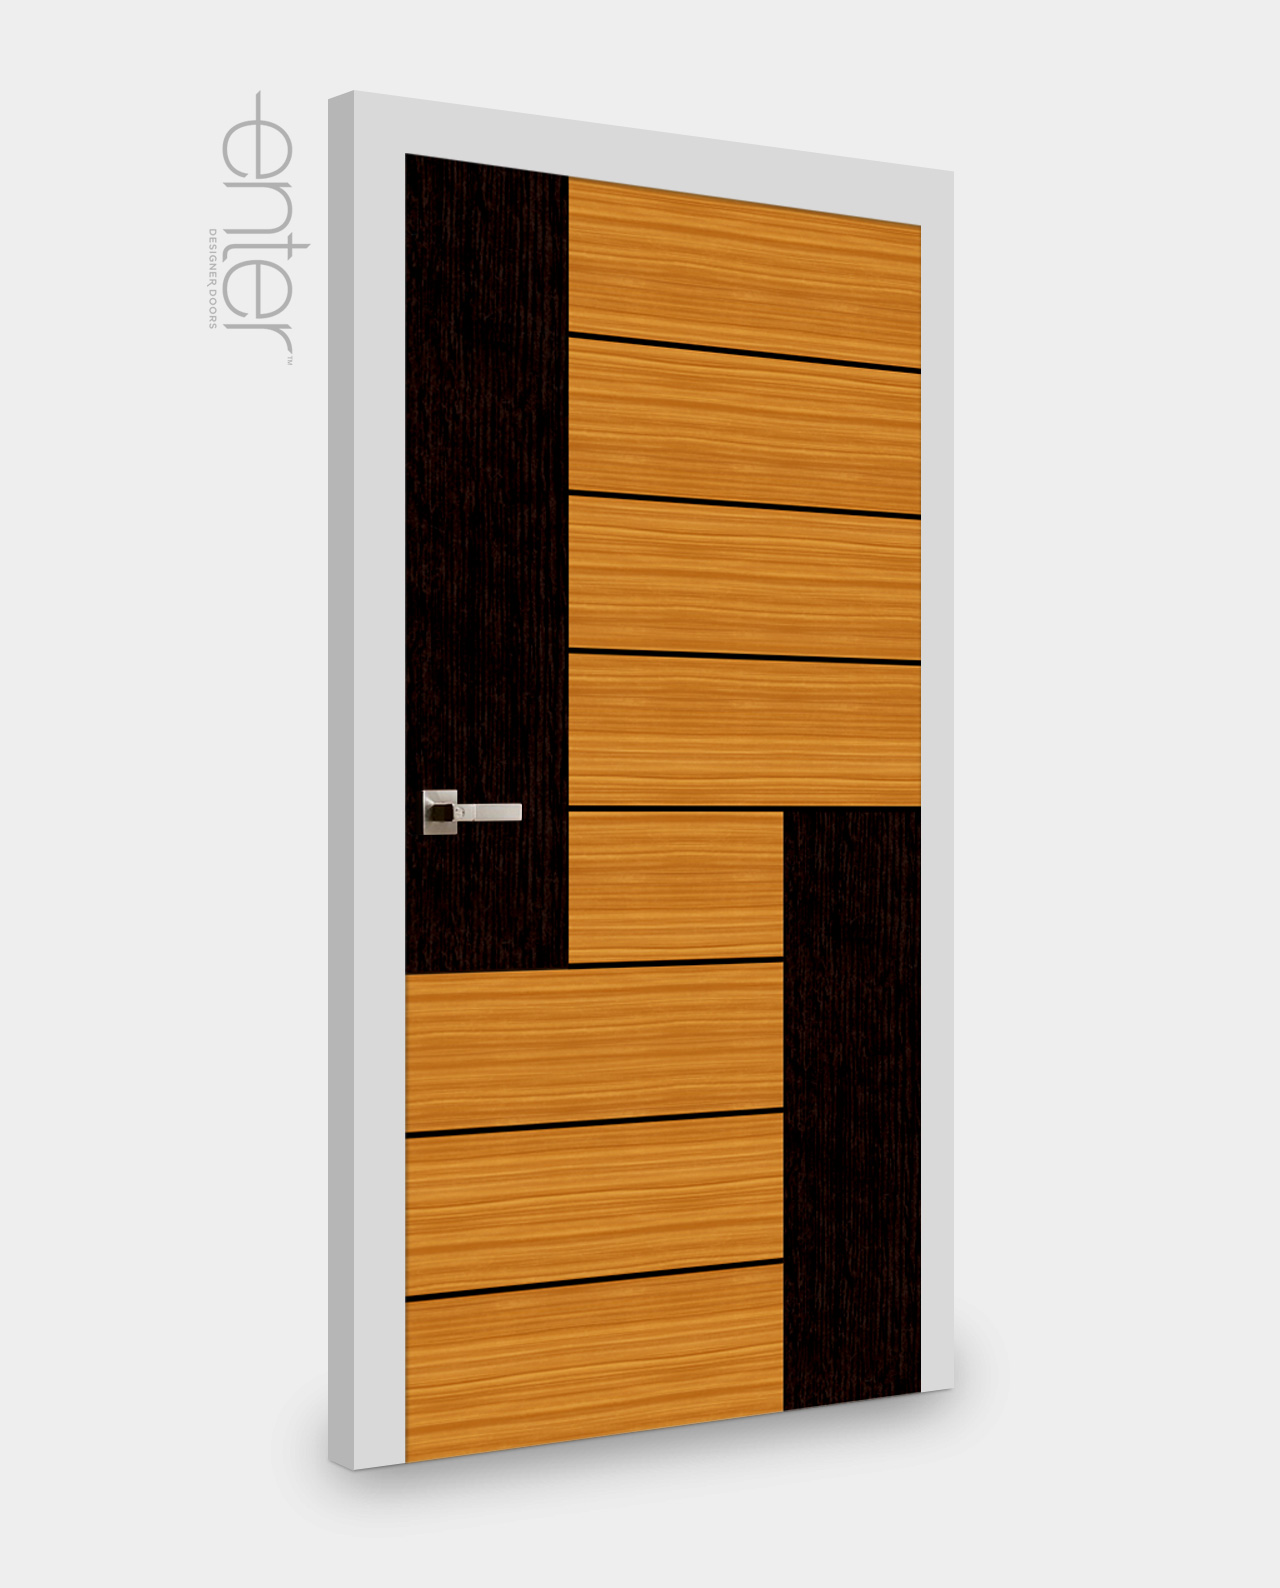 Previous; Next  sc 1 st  JJ Craft & LMN07 u2013 Laminated Door u2013 JJ Craft